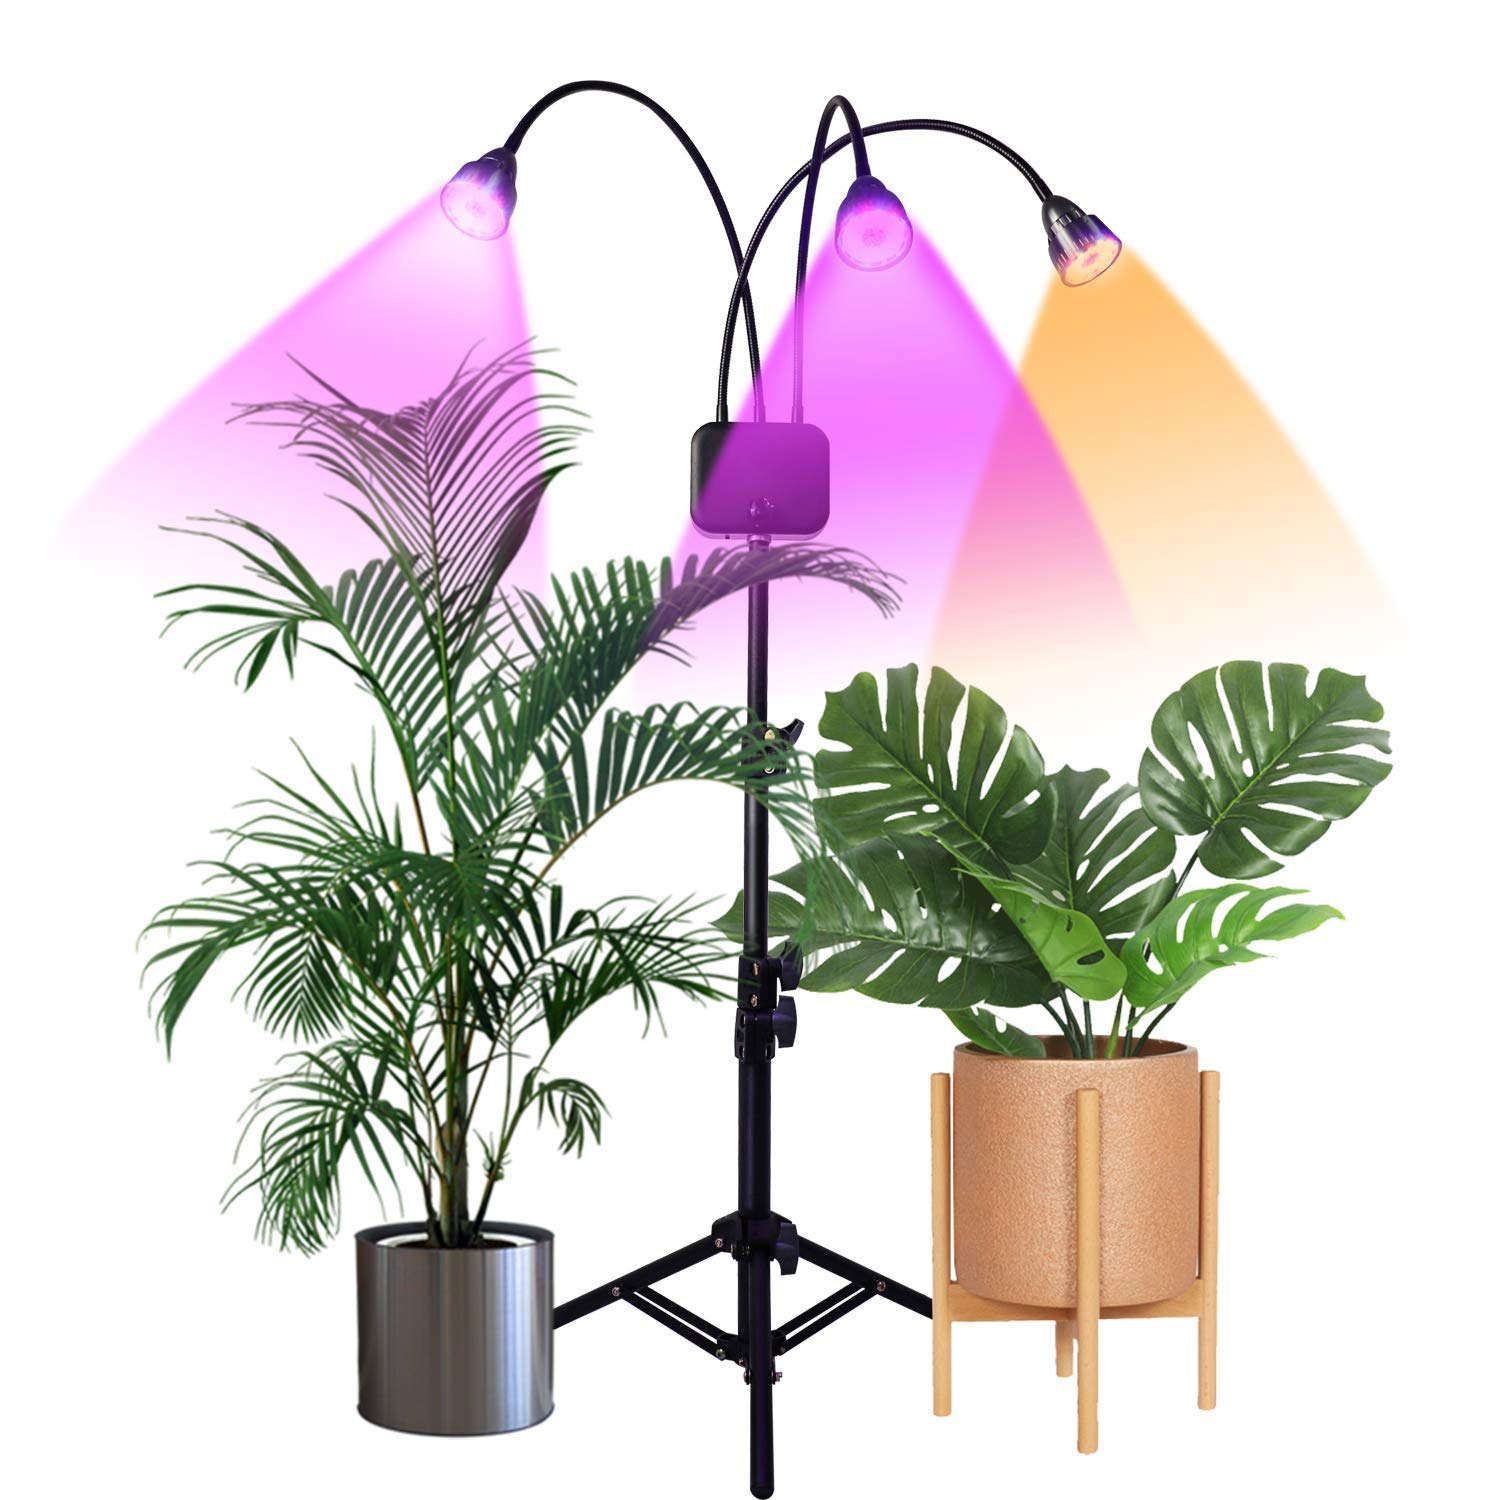 13th wedding anniversary gift ideas - Adjustable grow lamp for gardening lovers